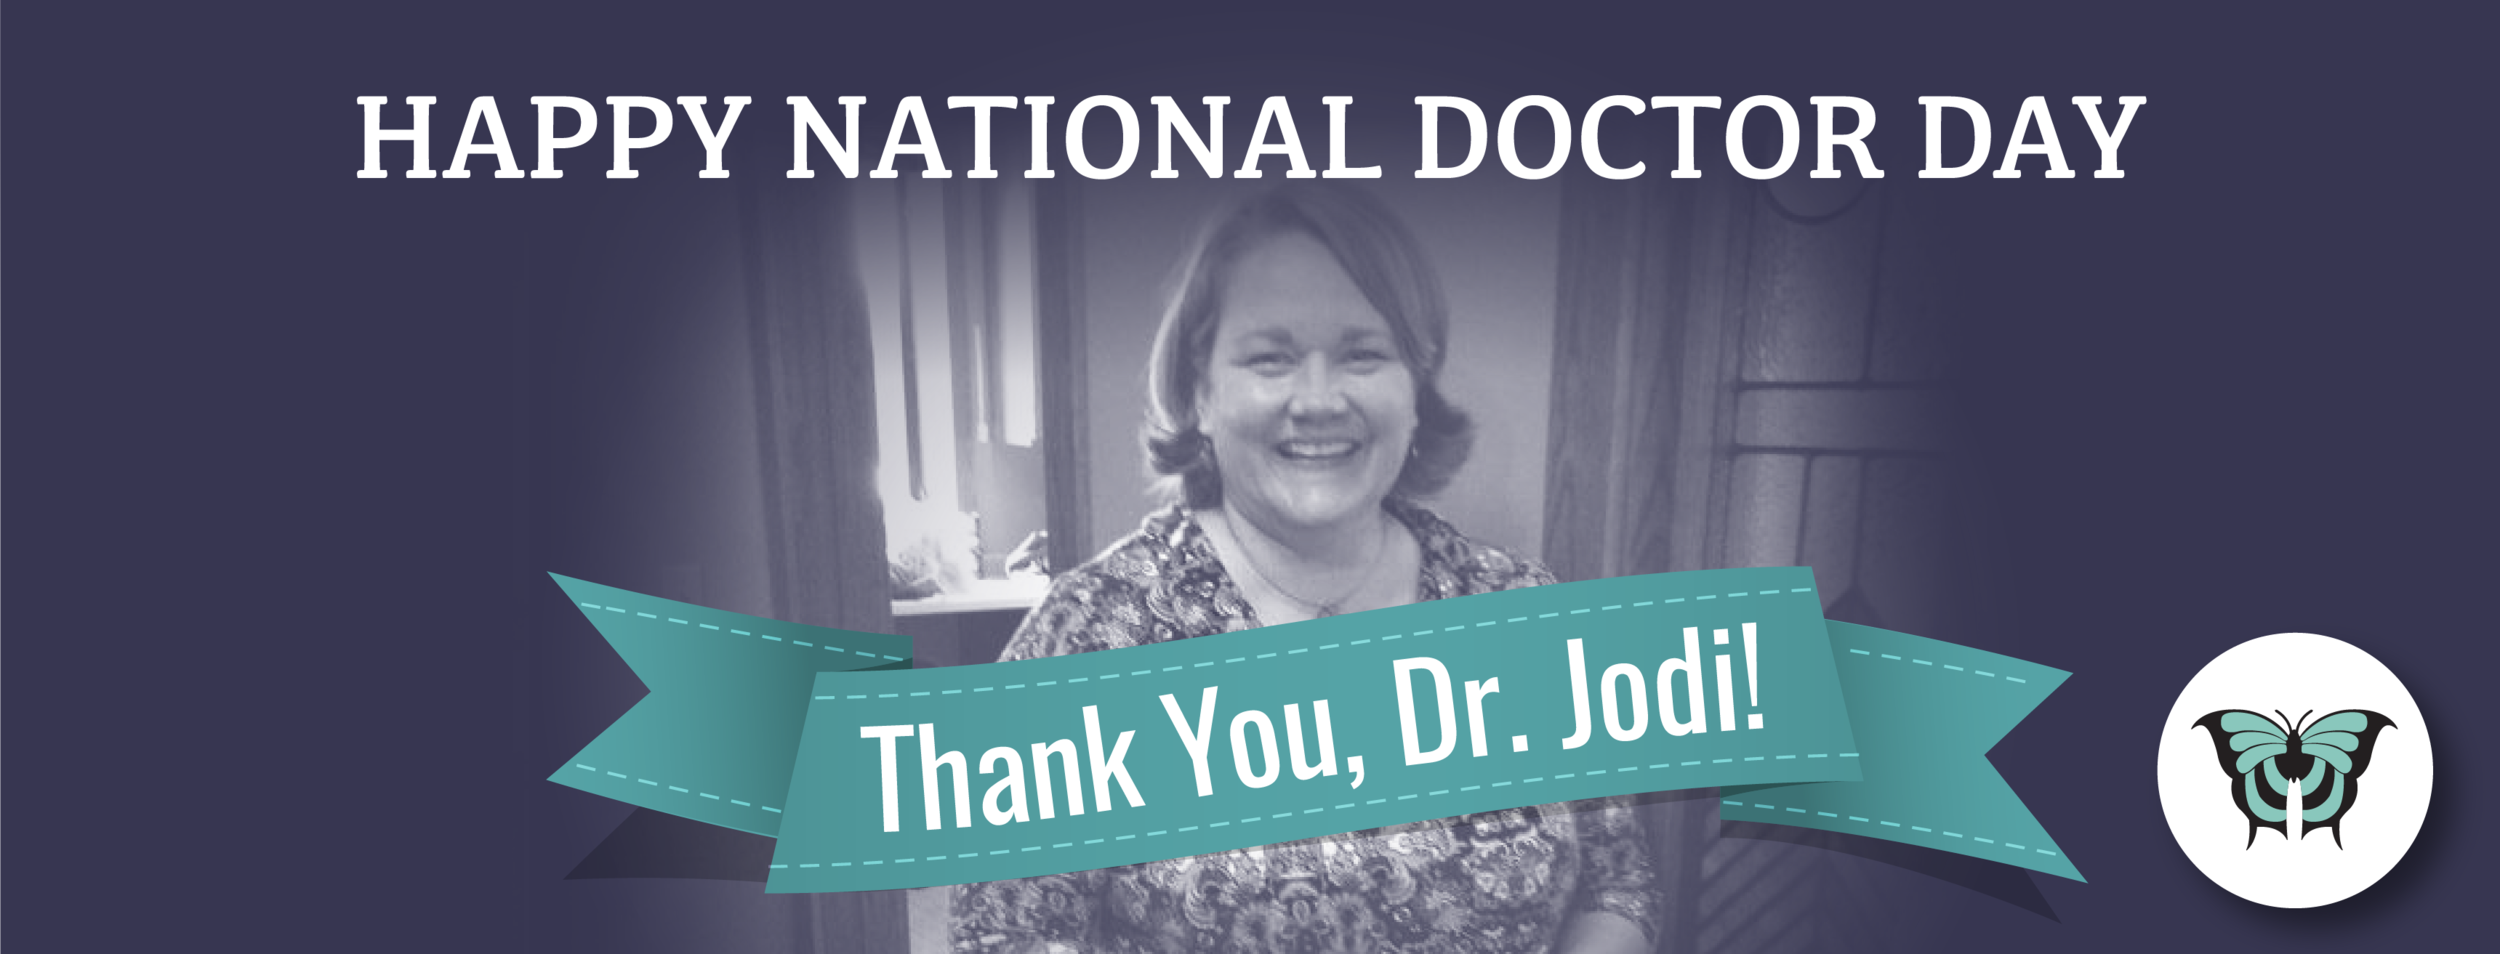 NationalDoctorDay_SocialGraphics-02.png